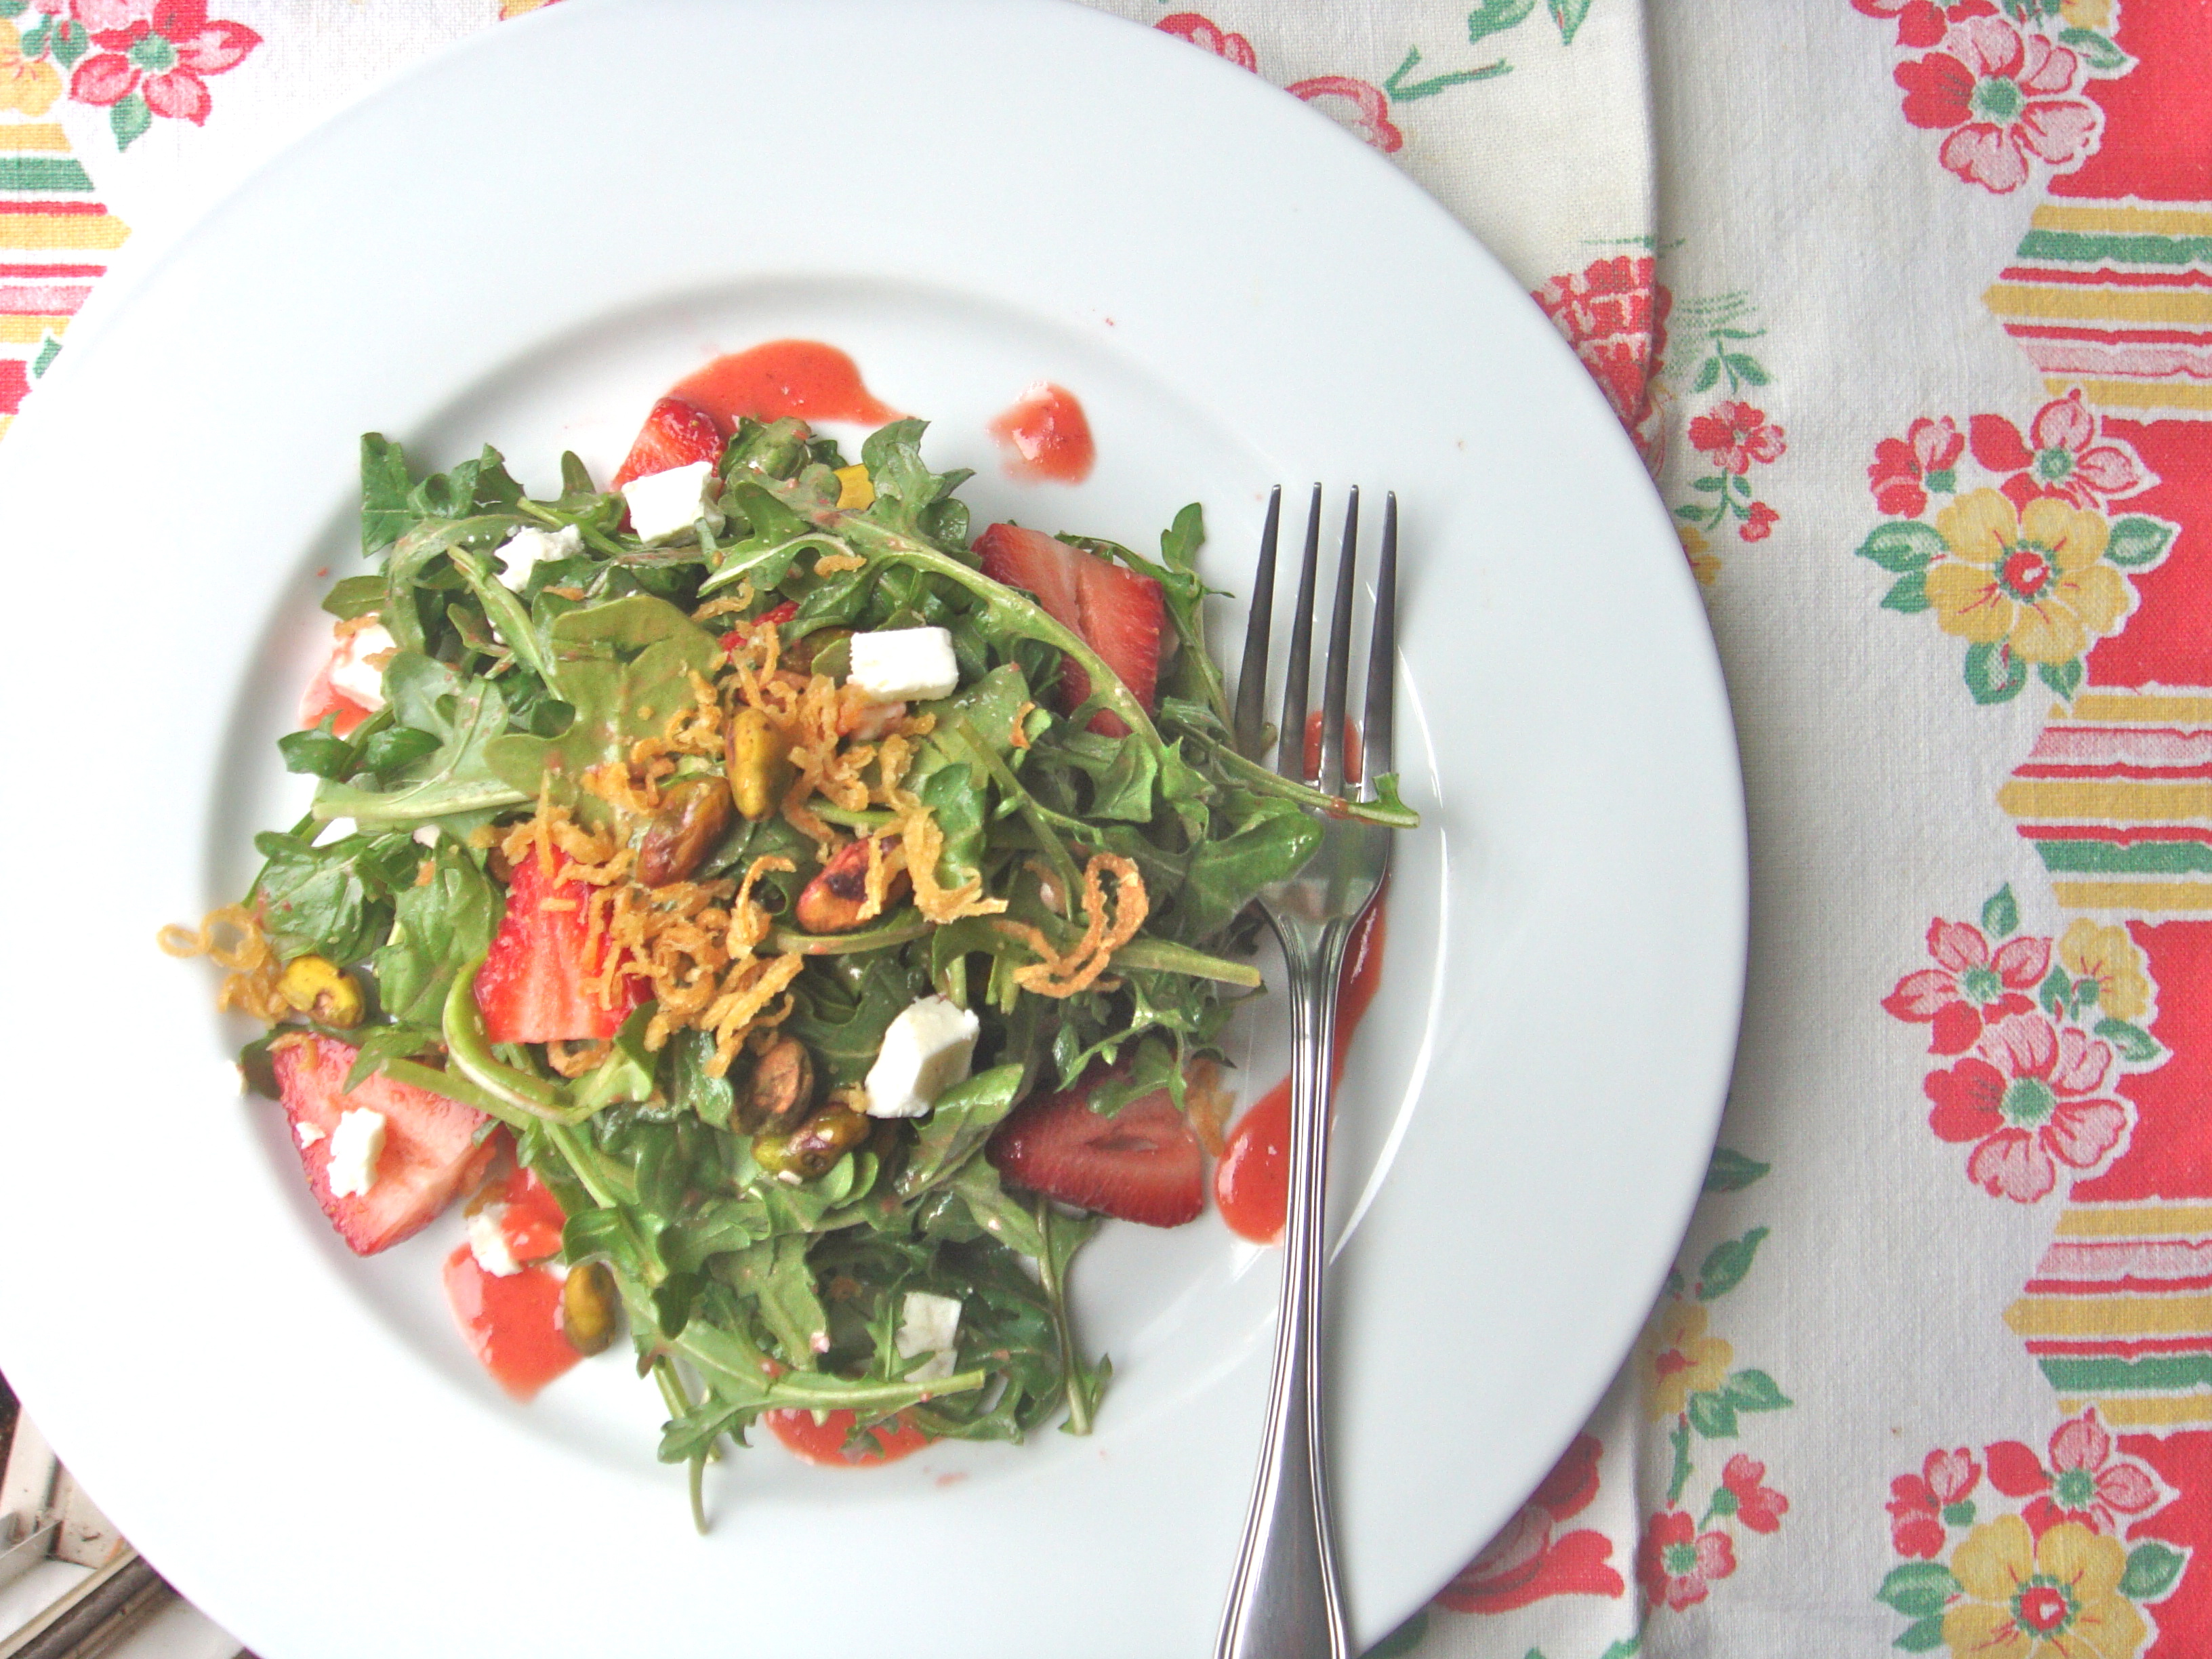 arugula and straw salad